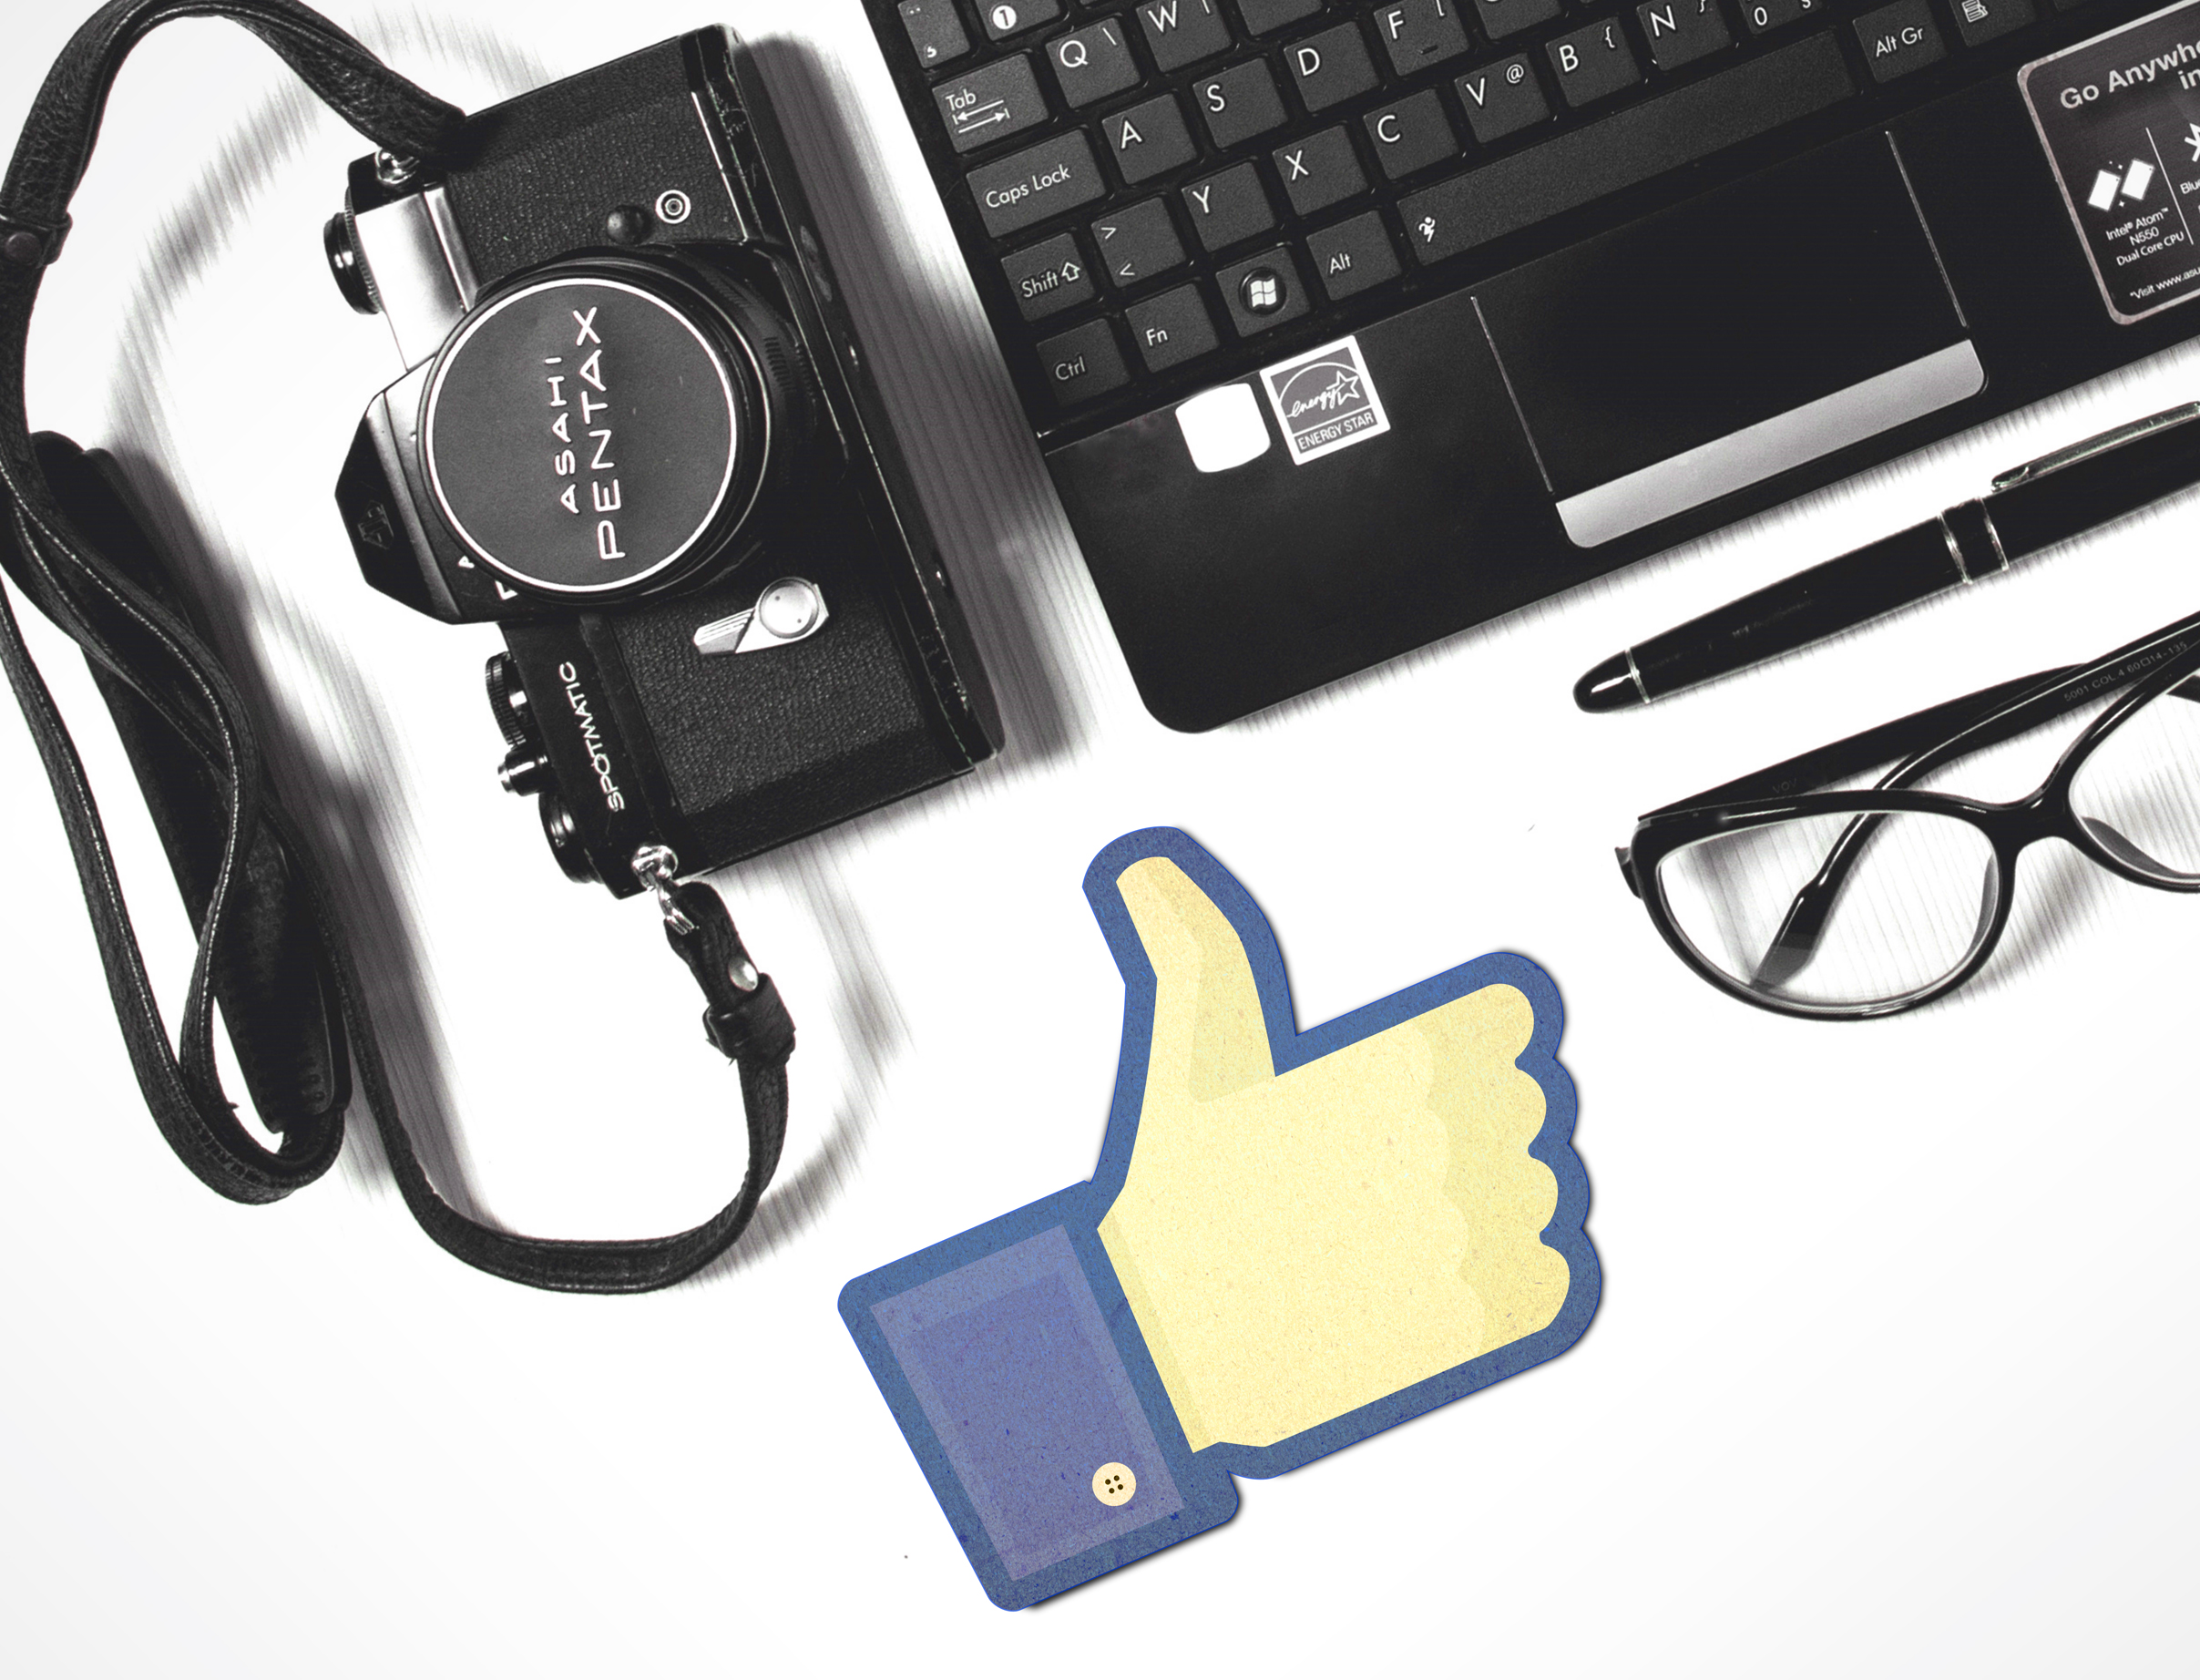 Facebook thumbs-up with laptop and camera photo